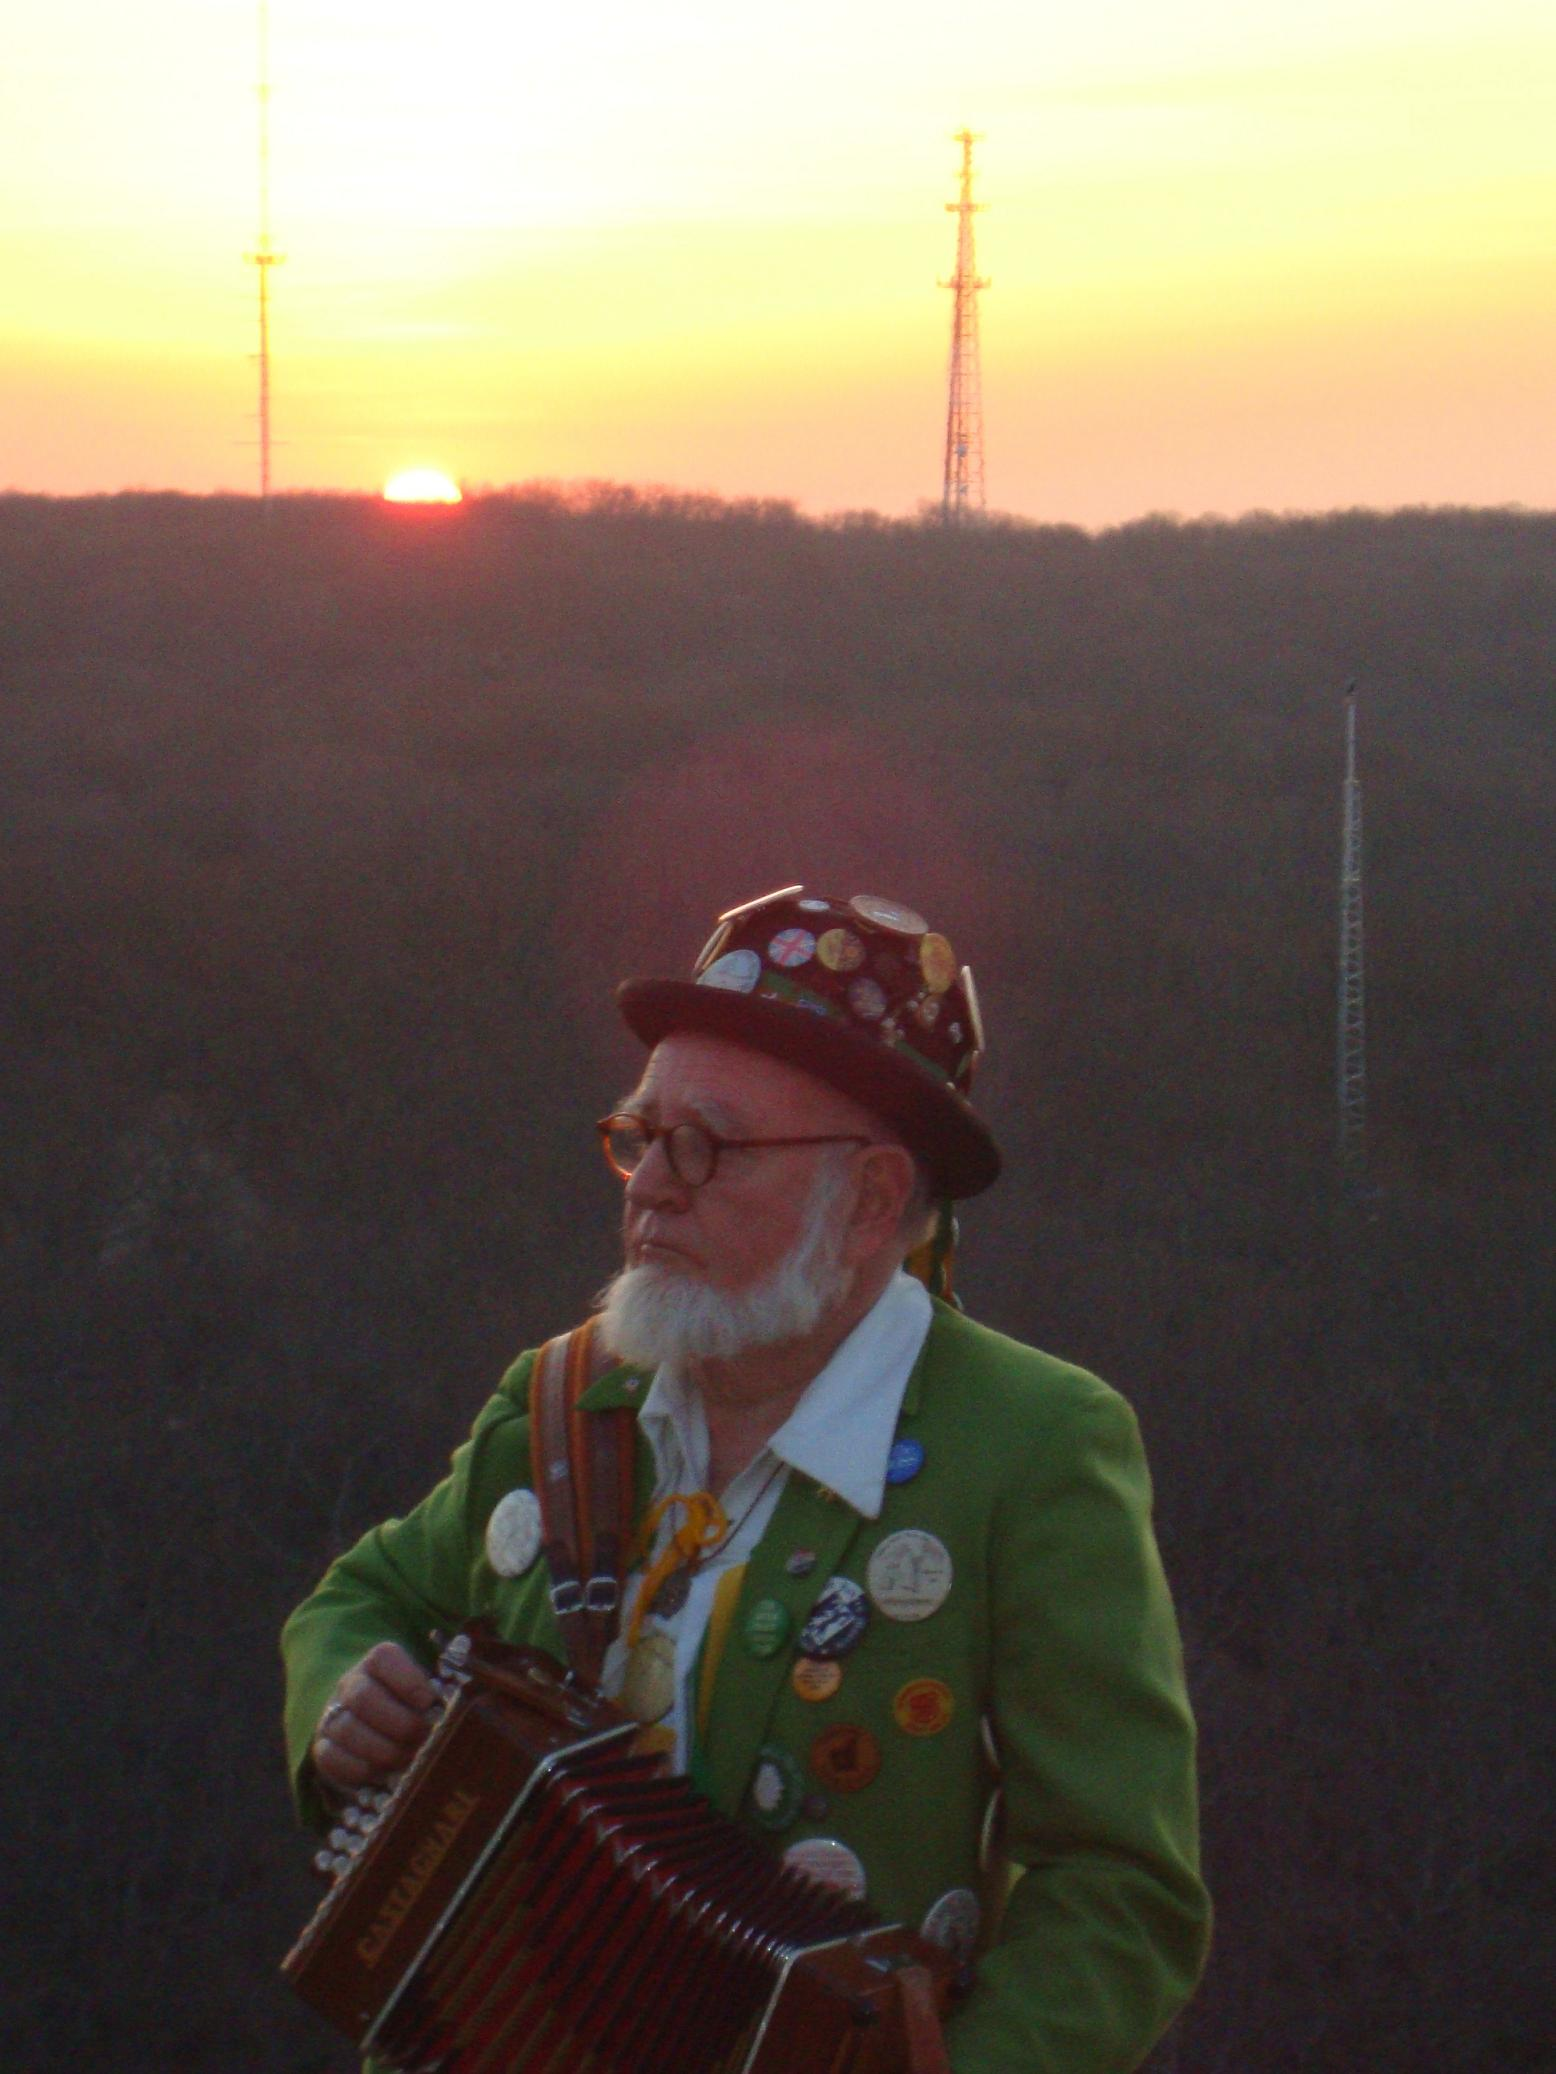 Musician Peter Leibert on Lantern Hill